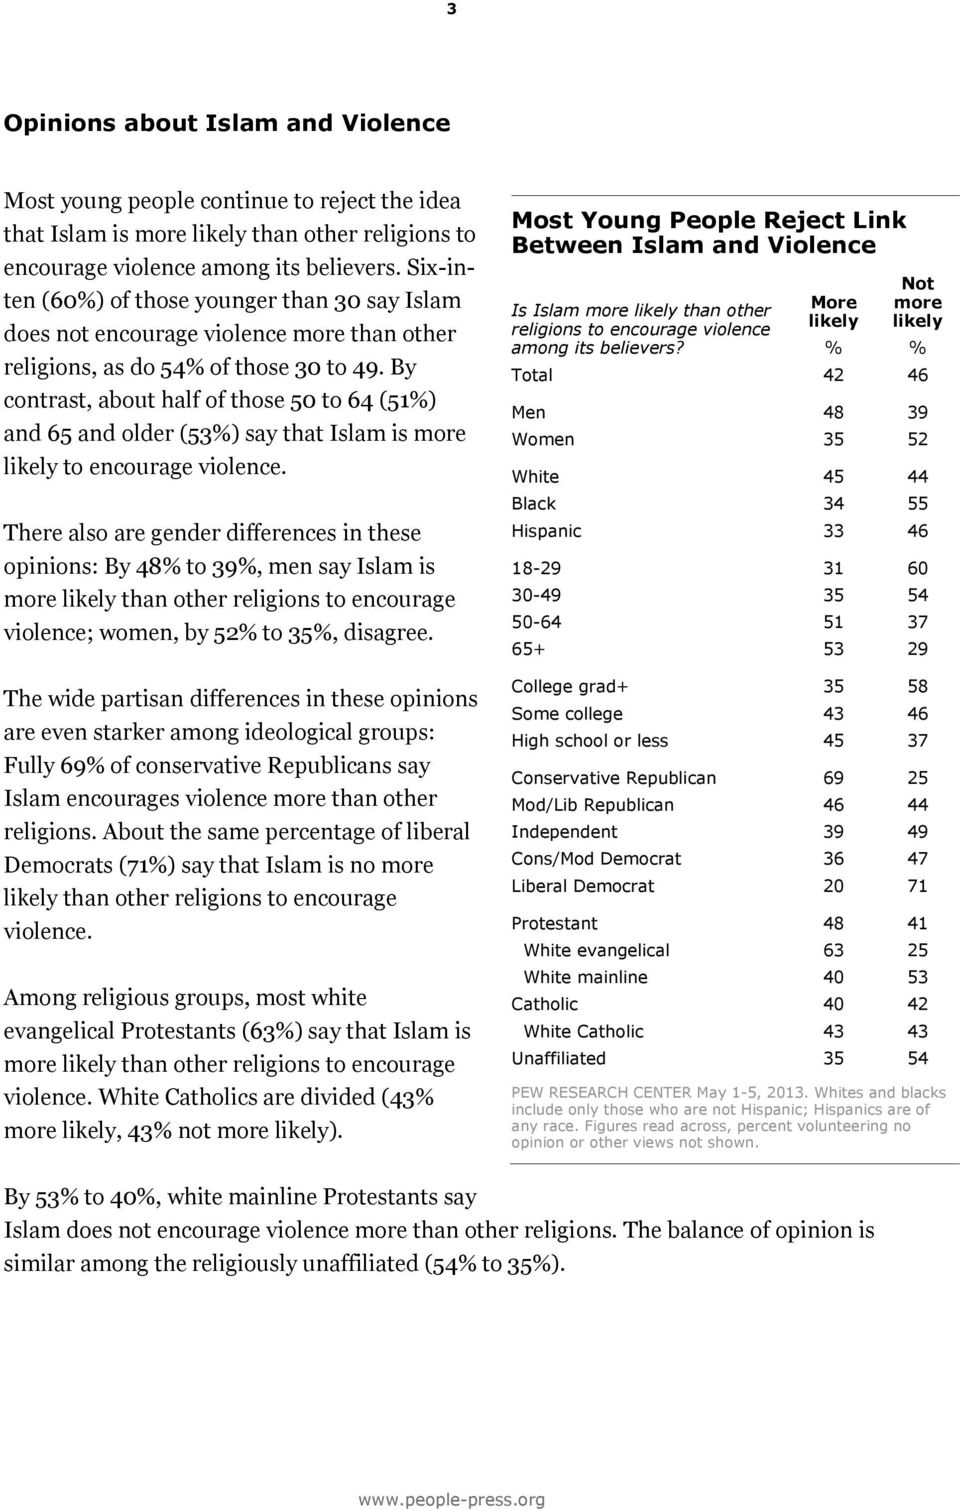 By contrast, about half of those 50 to 64 (51%) and 65 and older (53%) say that Islam is more likely to encourage violence.